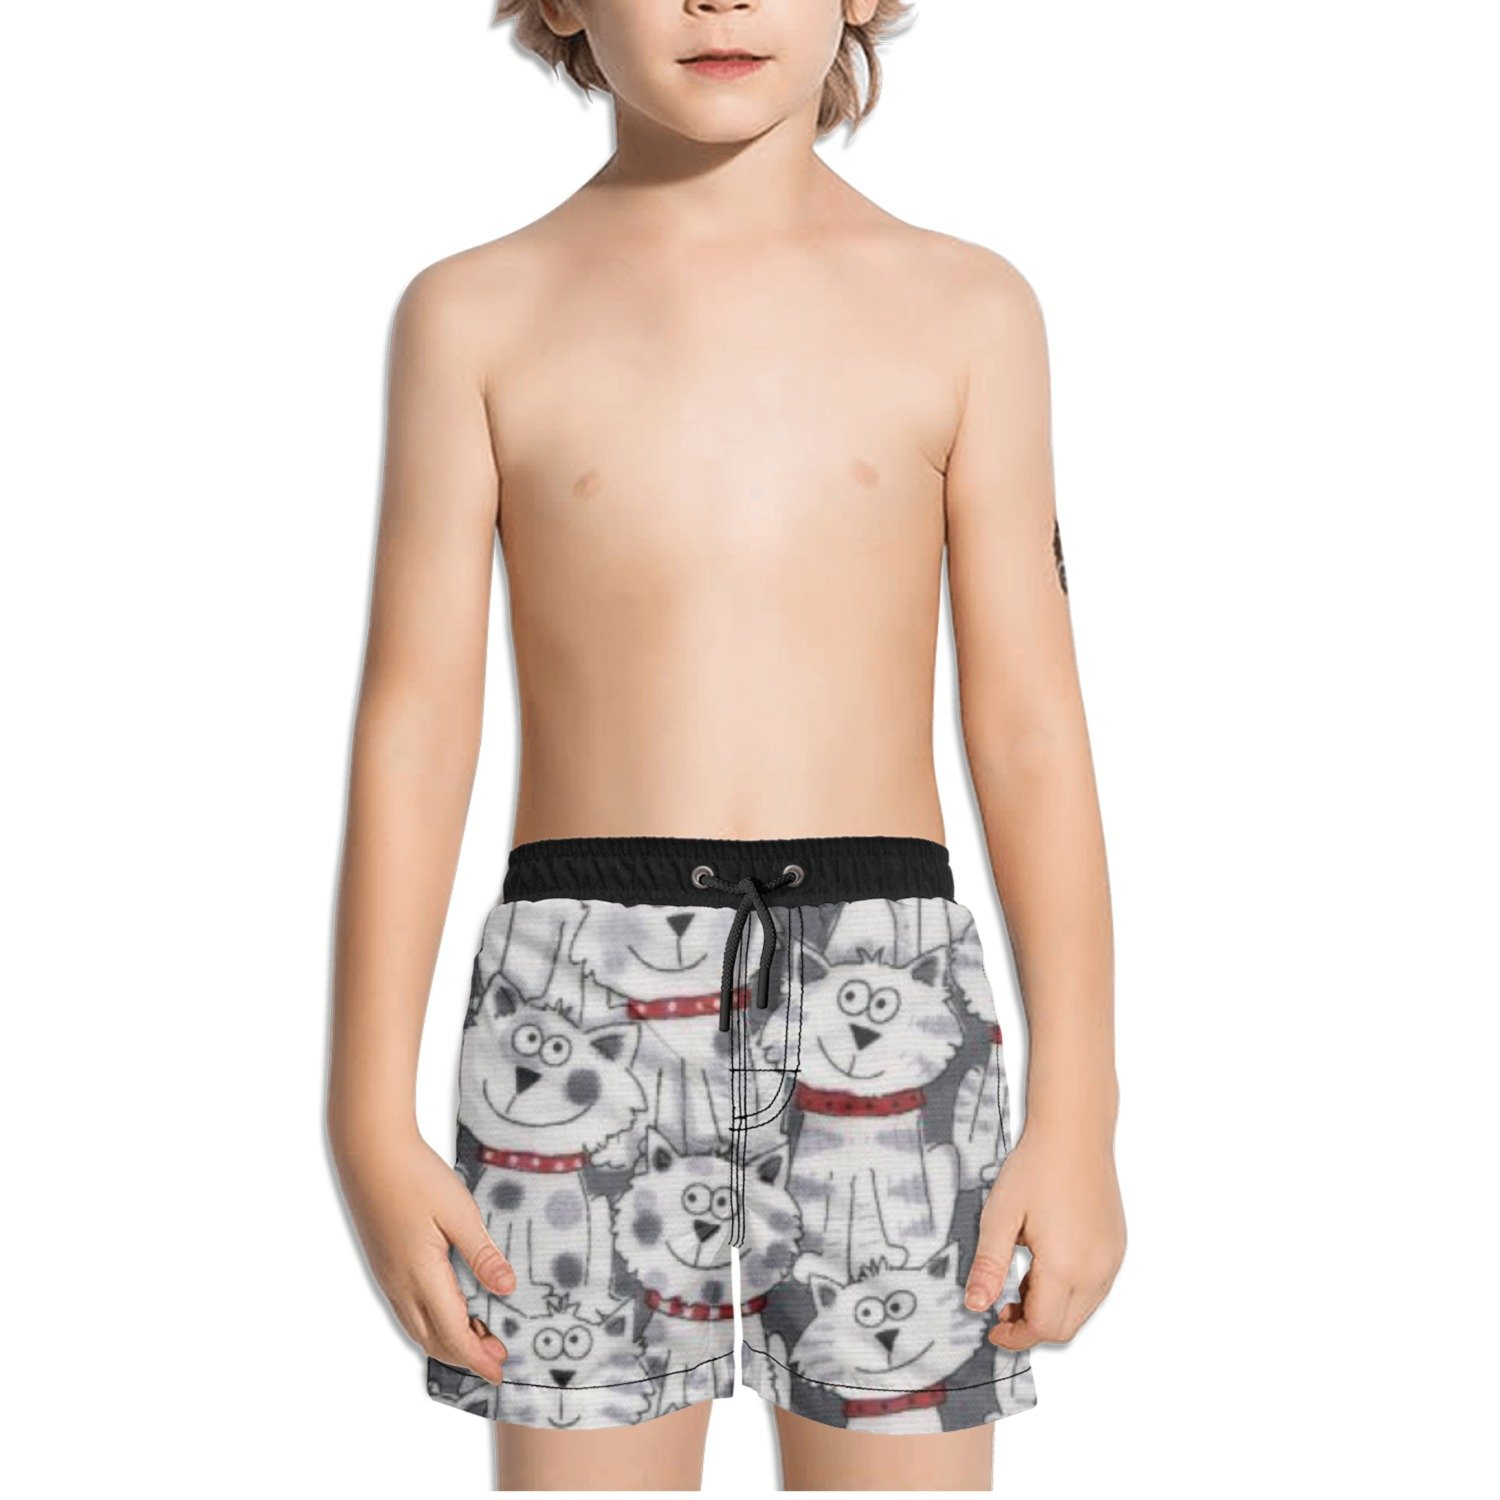 Ouxioaz Boys Swim Trunk Seamless Cats Beach Board Shorts